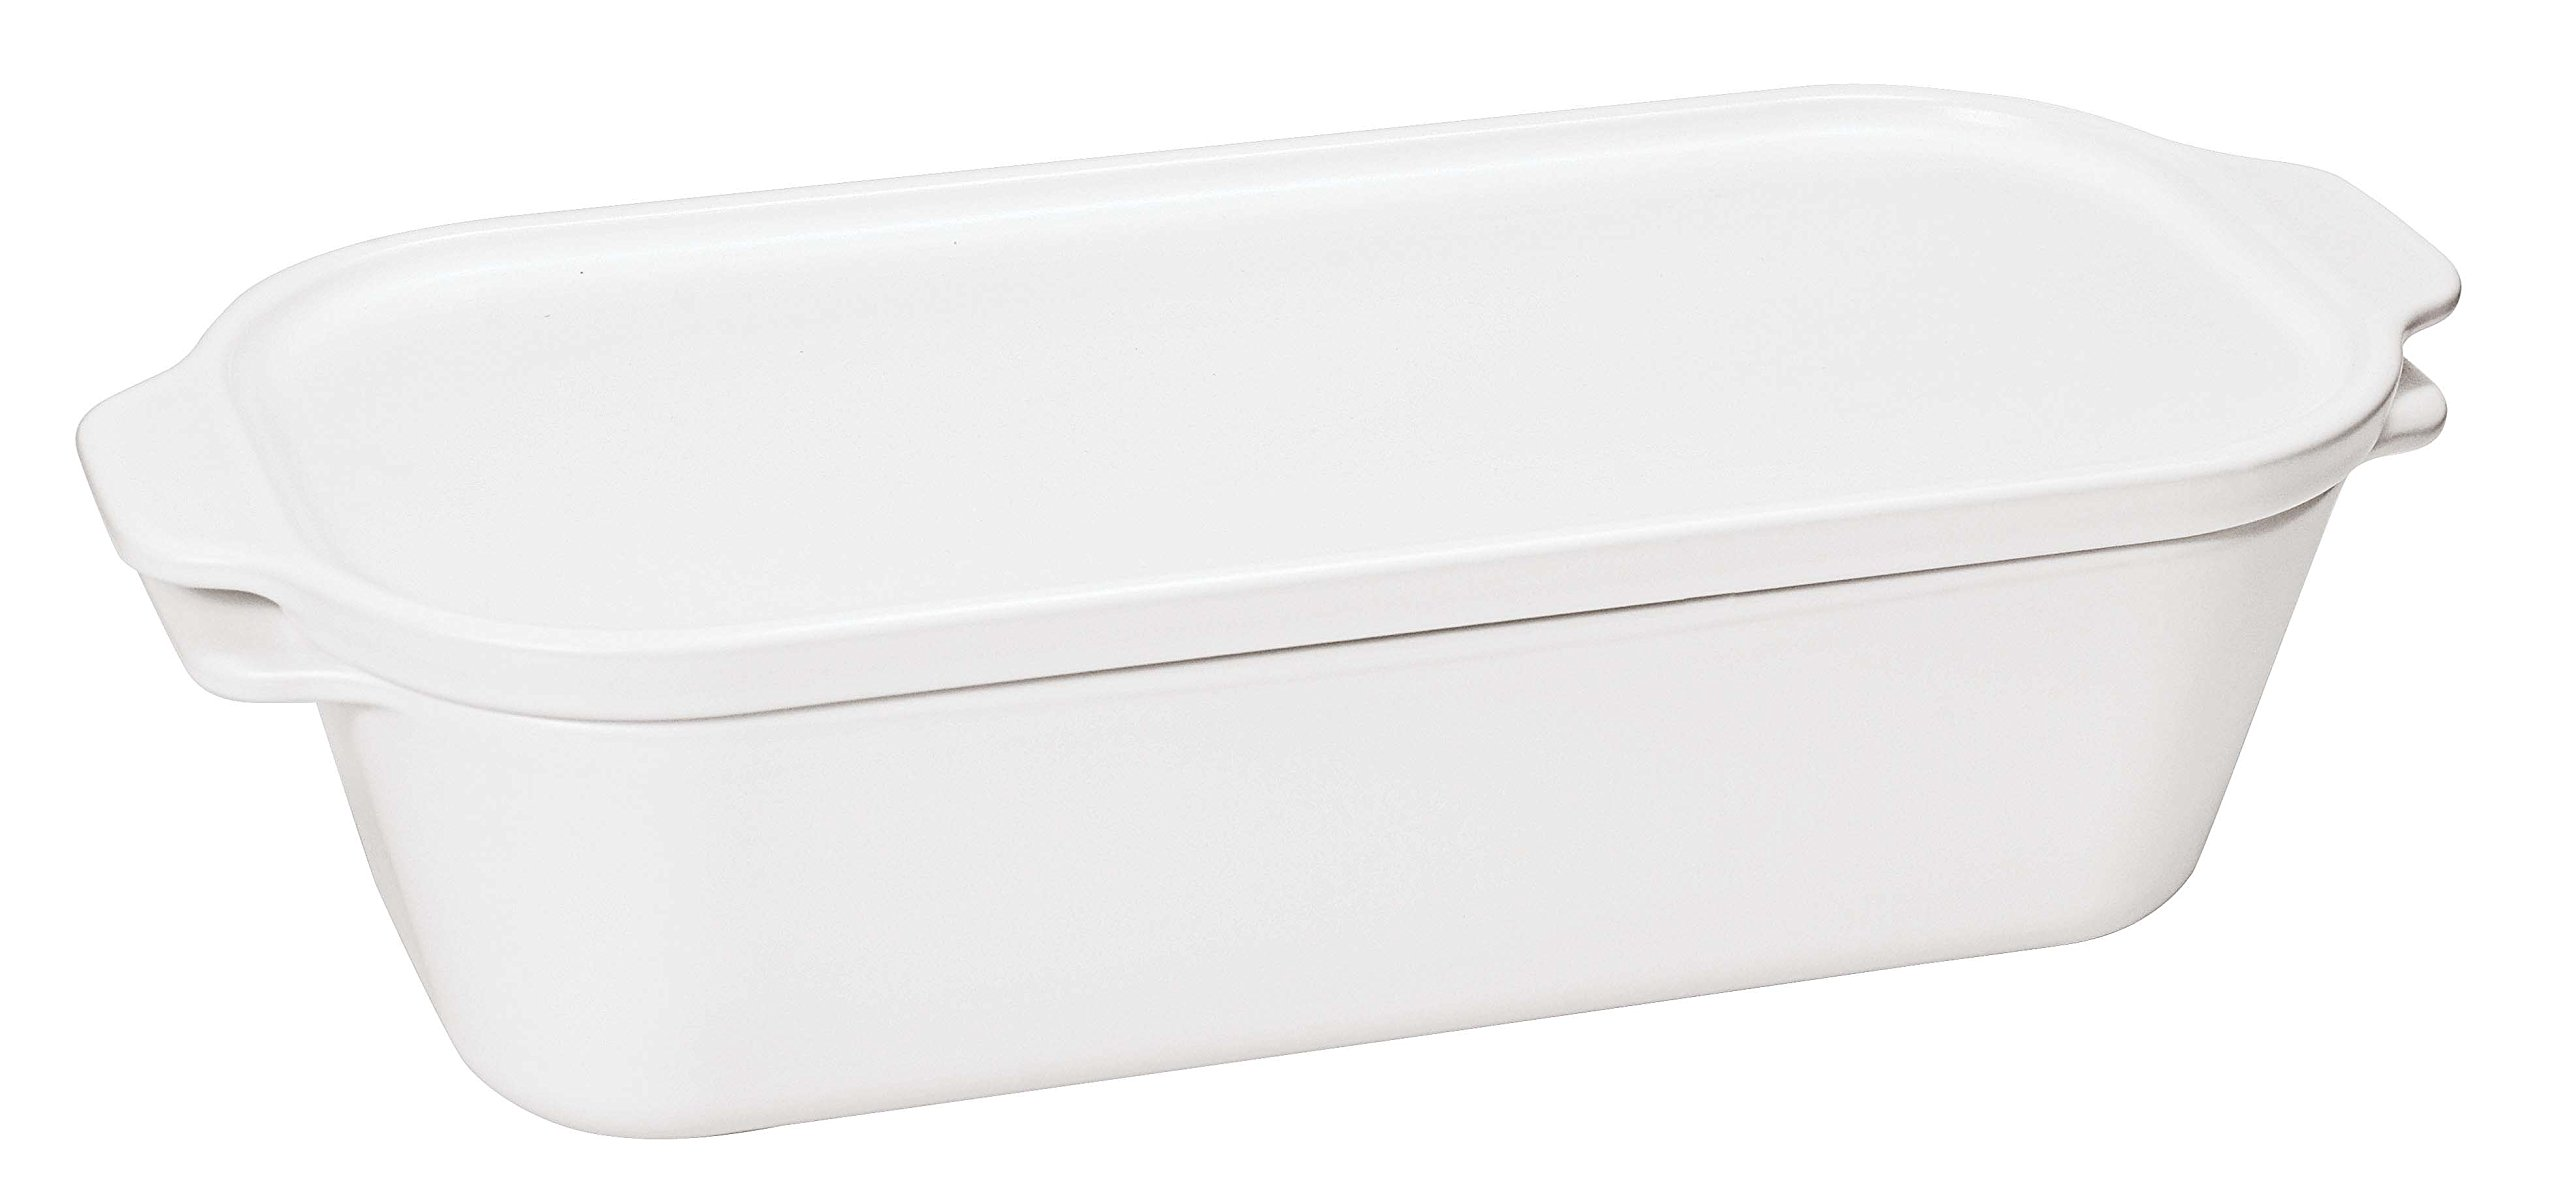 Paderno World Cuisine White Ceramic Terrine Mold with Lid, 1 3/4-Quart by Paderno World Cuisine